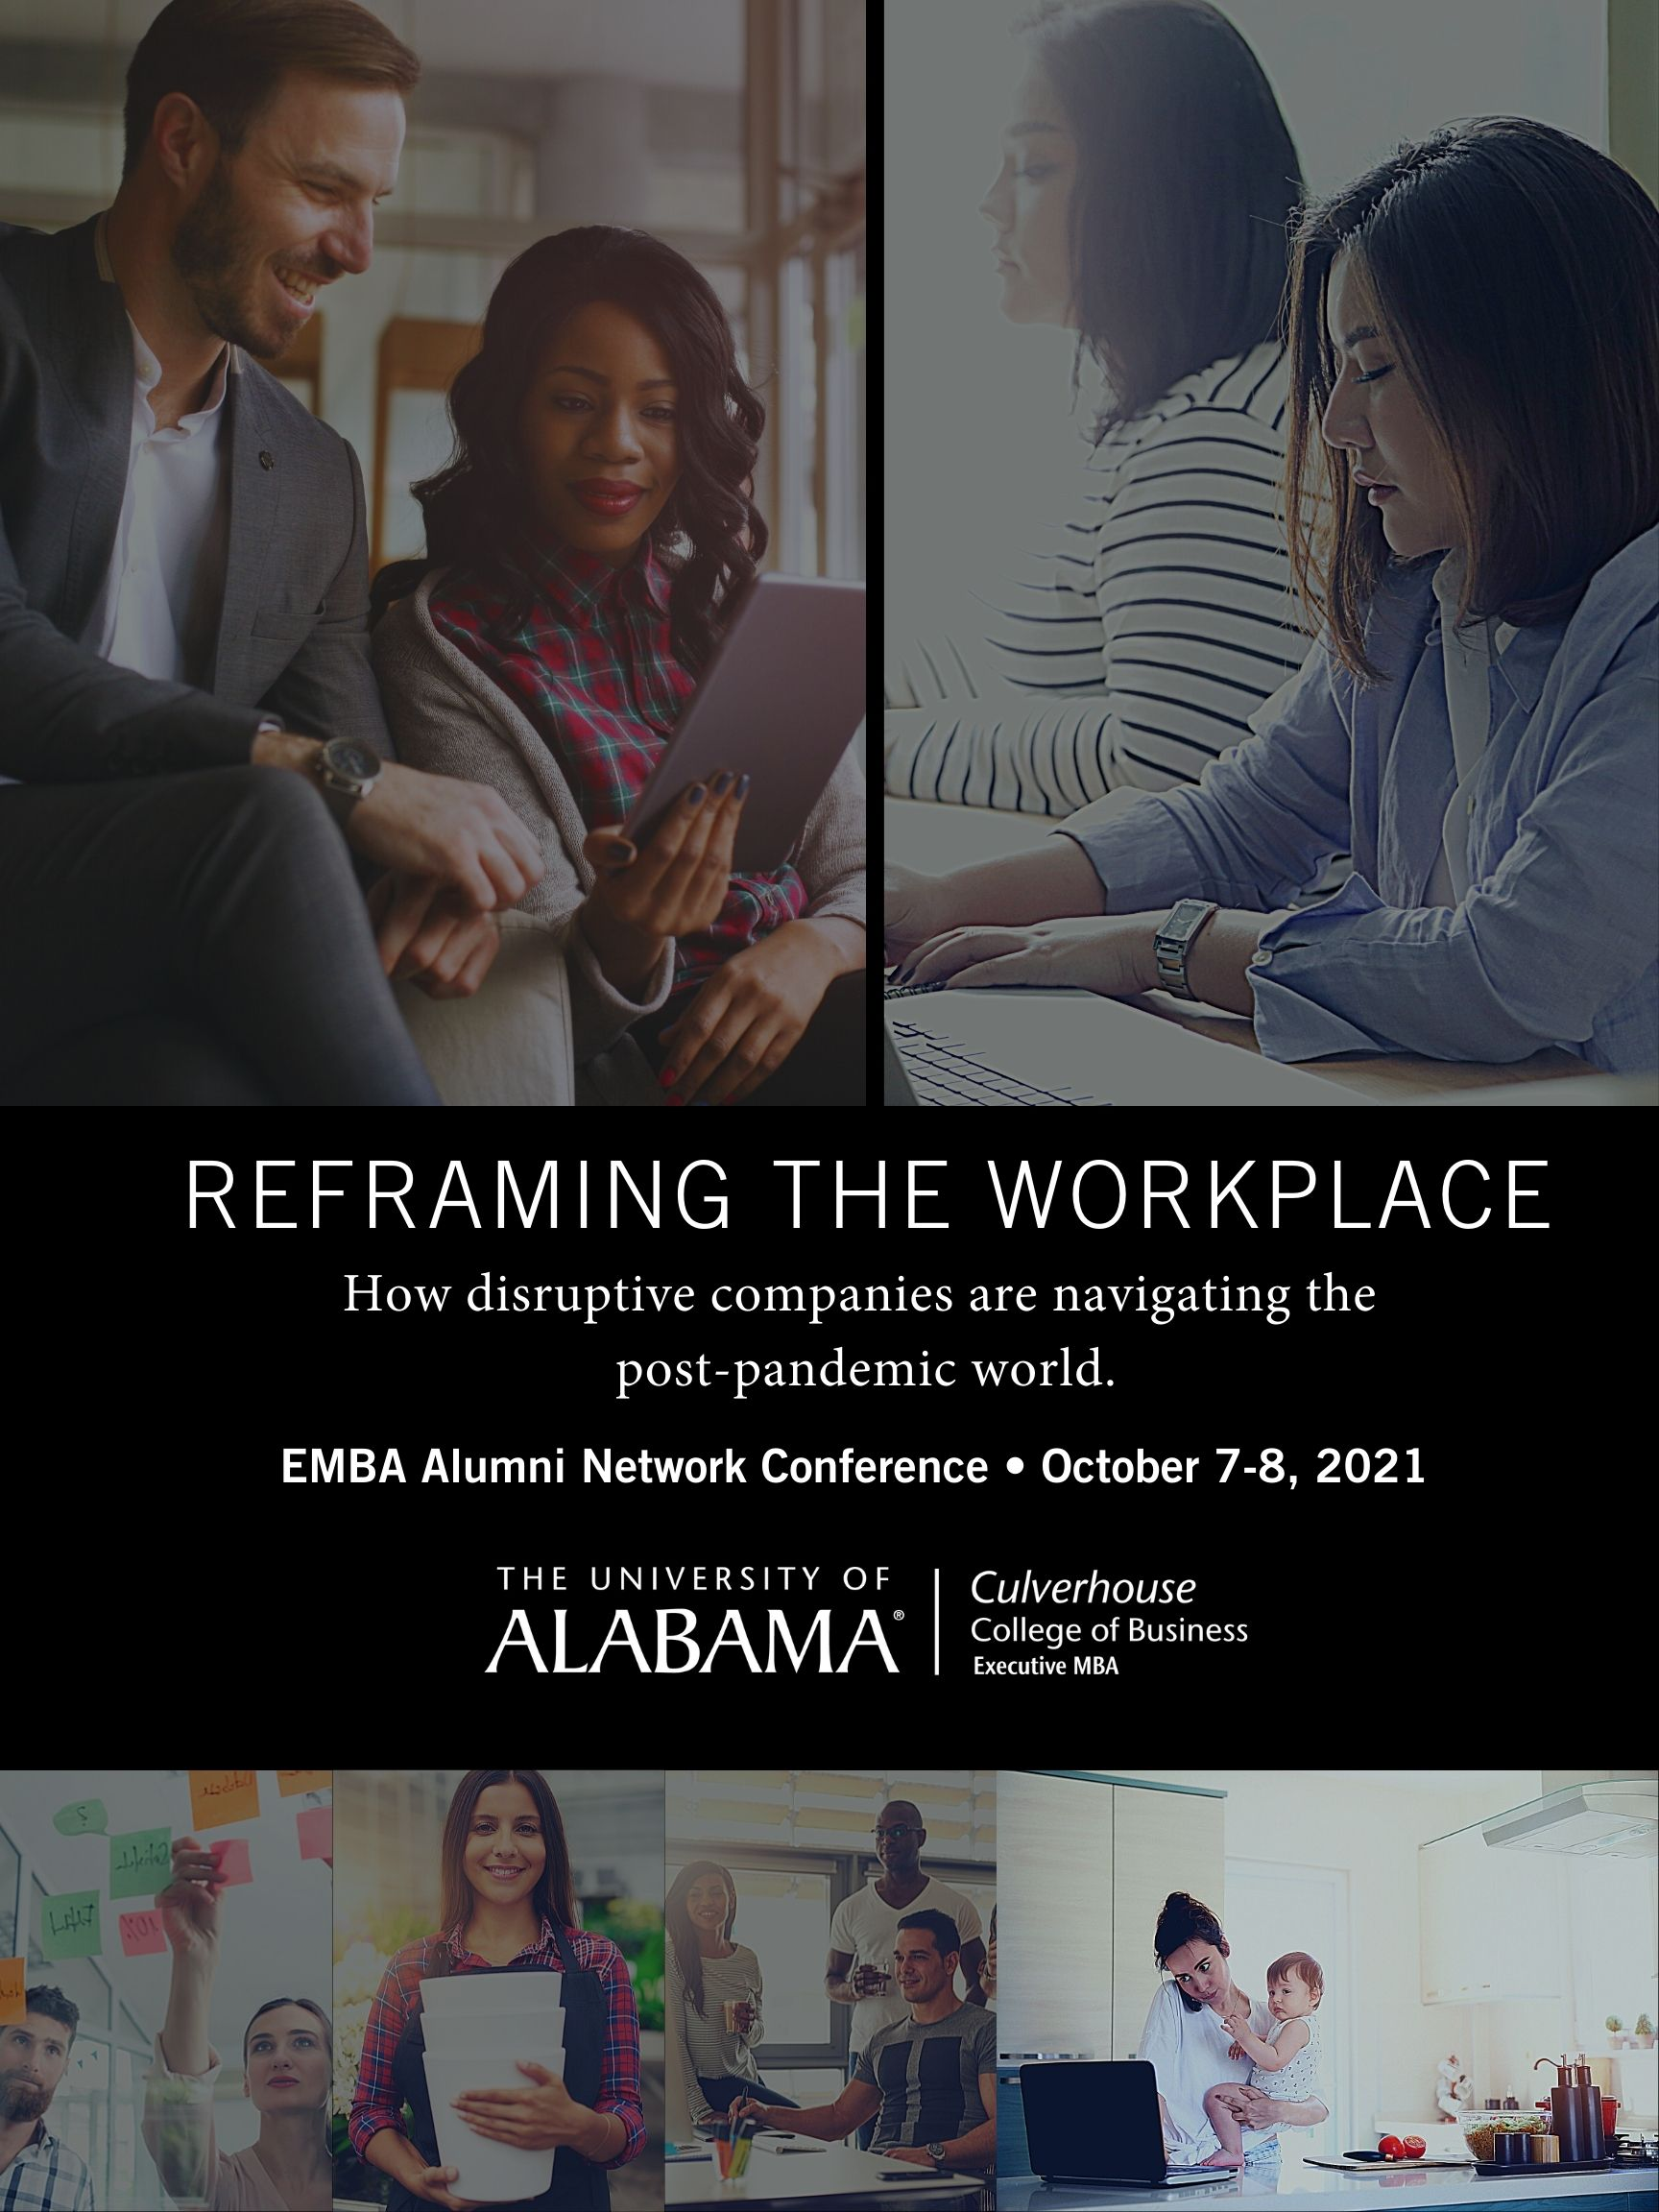 EMBA Annual Conference: Reframing the Workplace